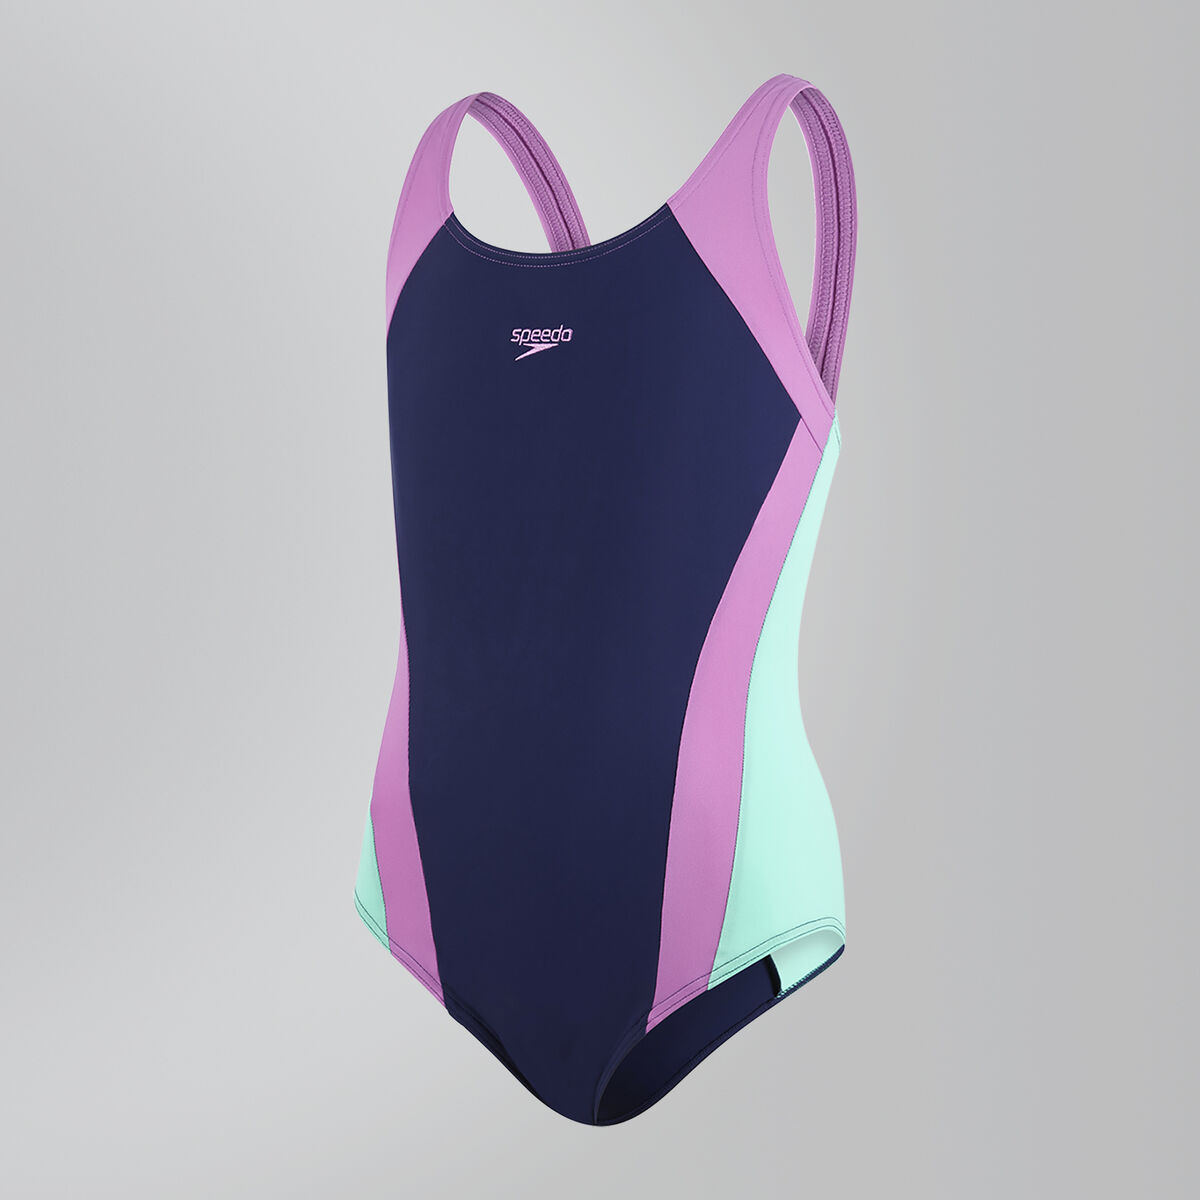 Contrast Splashback Swimsuit